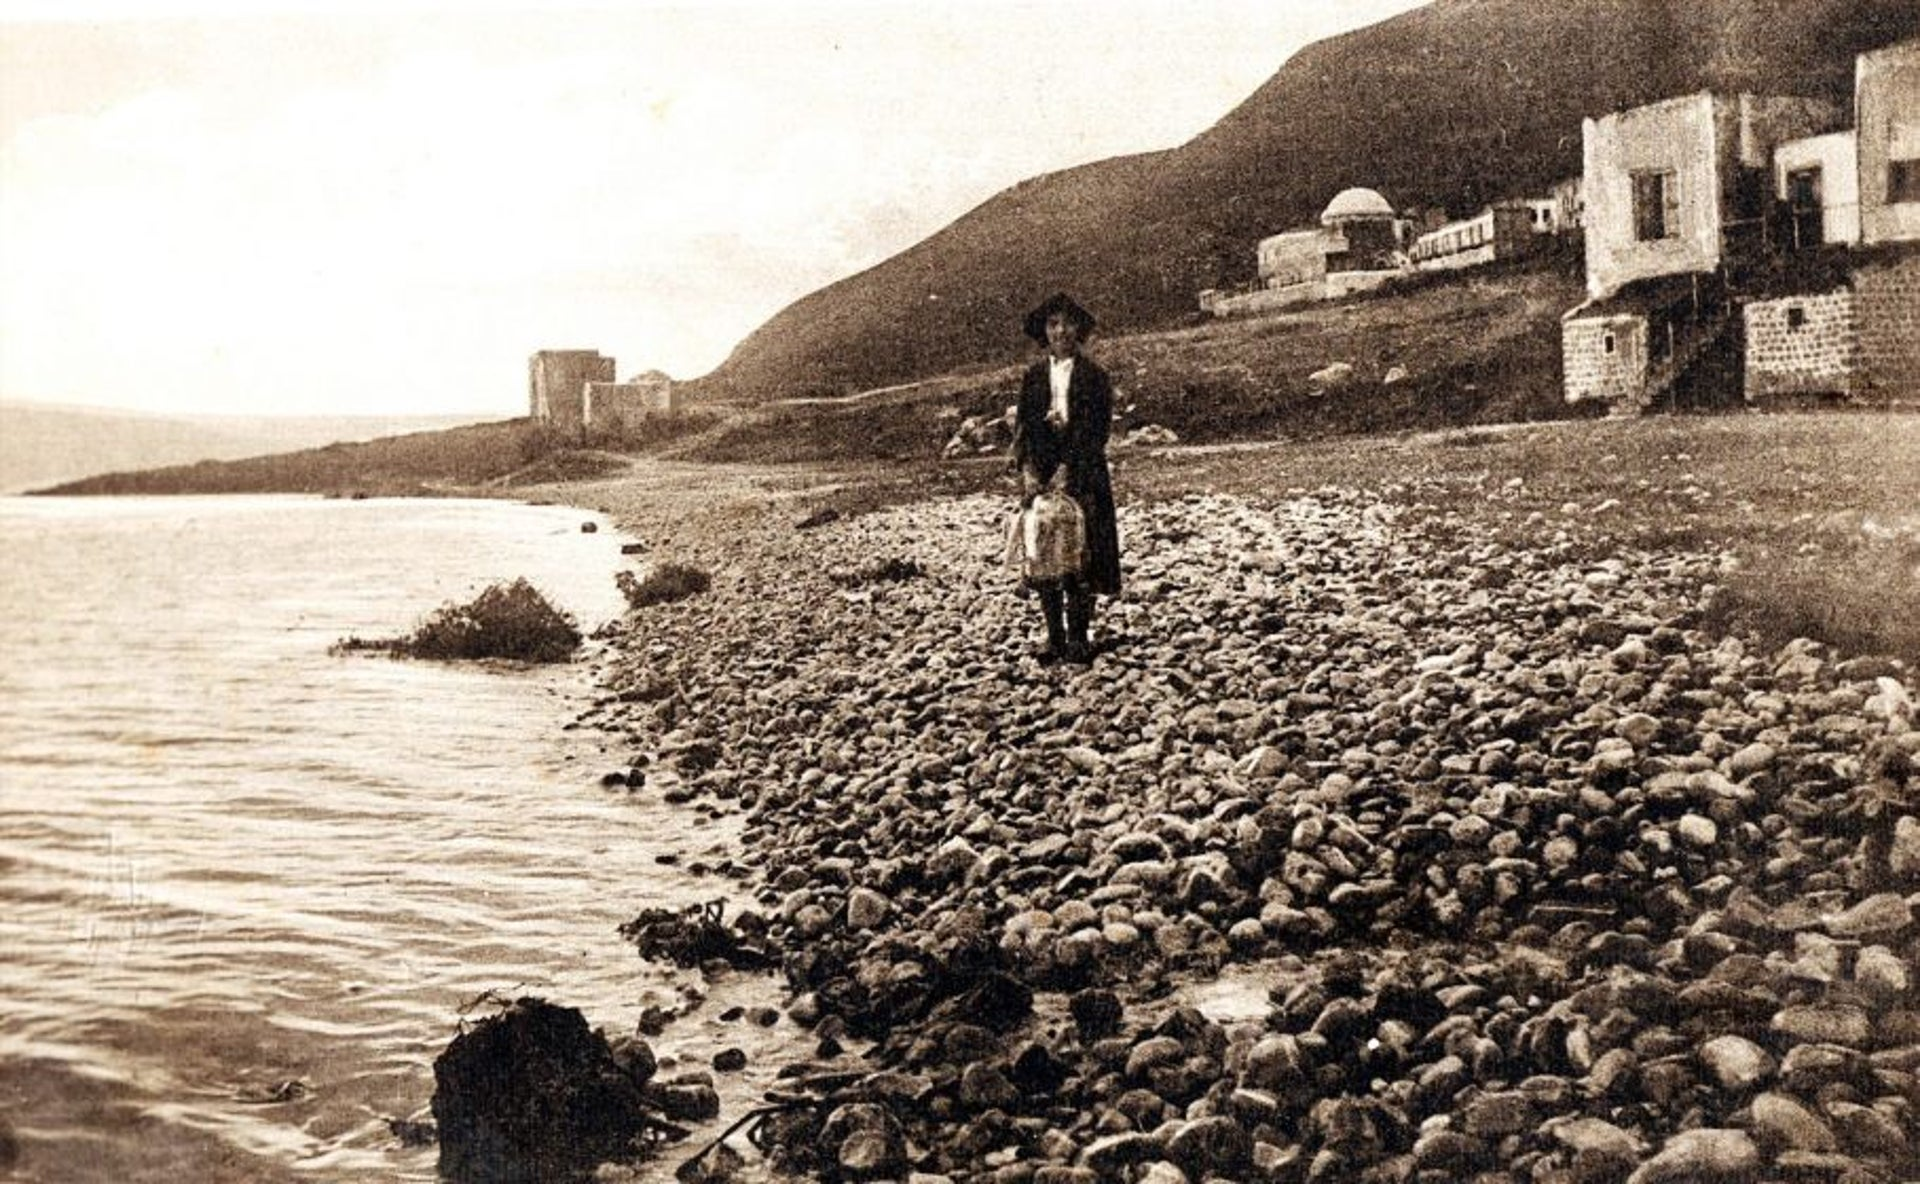 The Kinneret coast at Galilee in a postcard from the early 20th century.